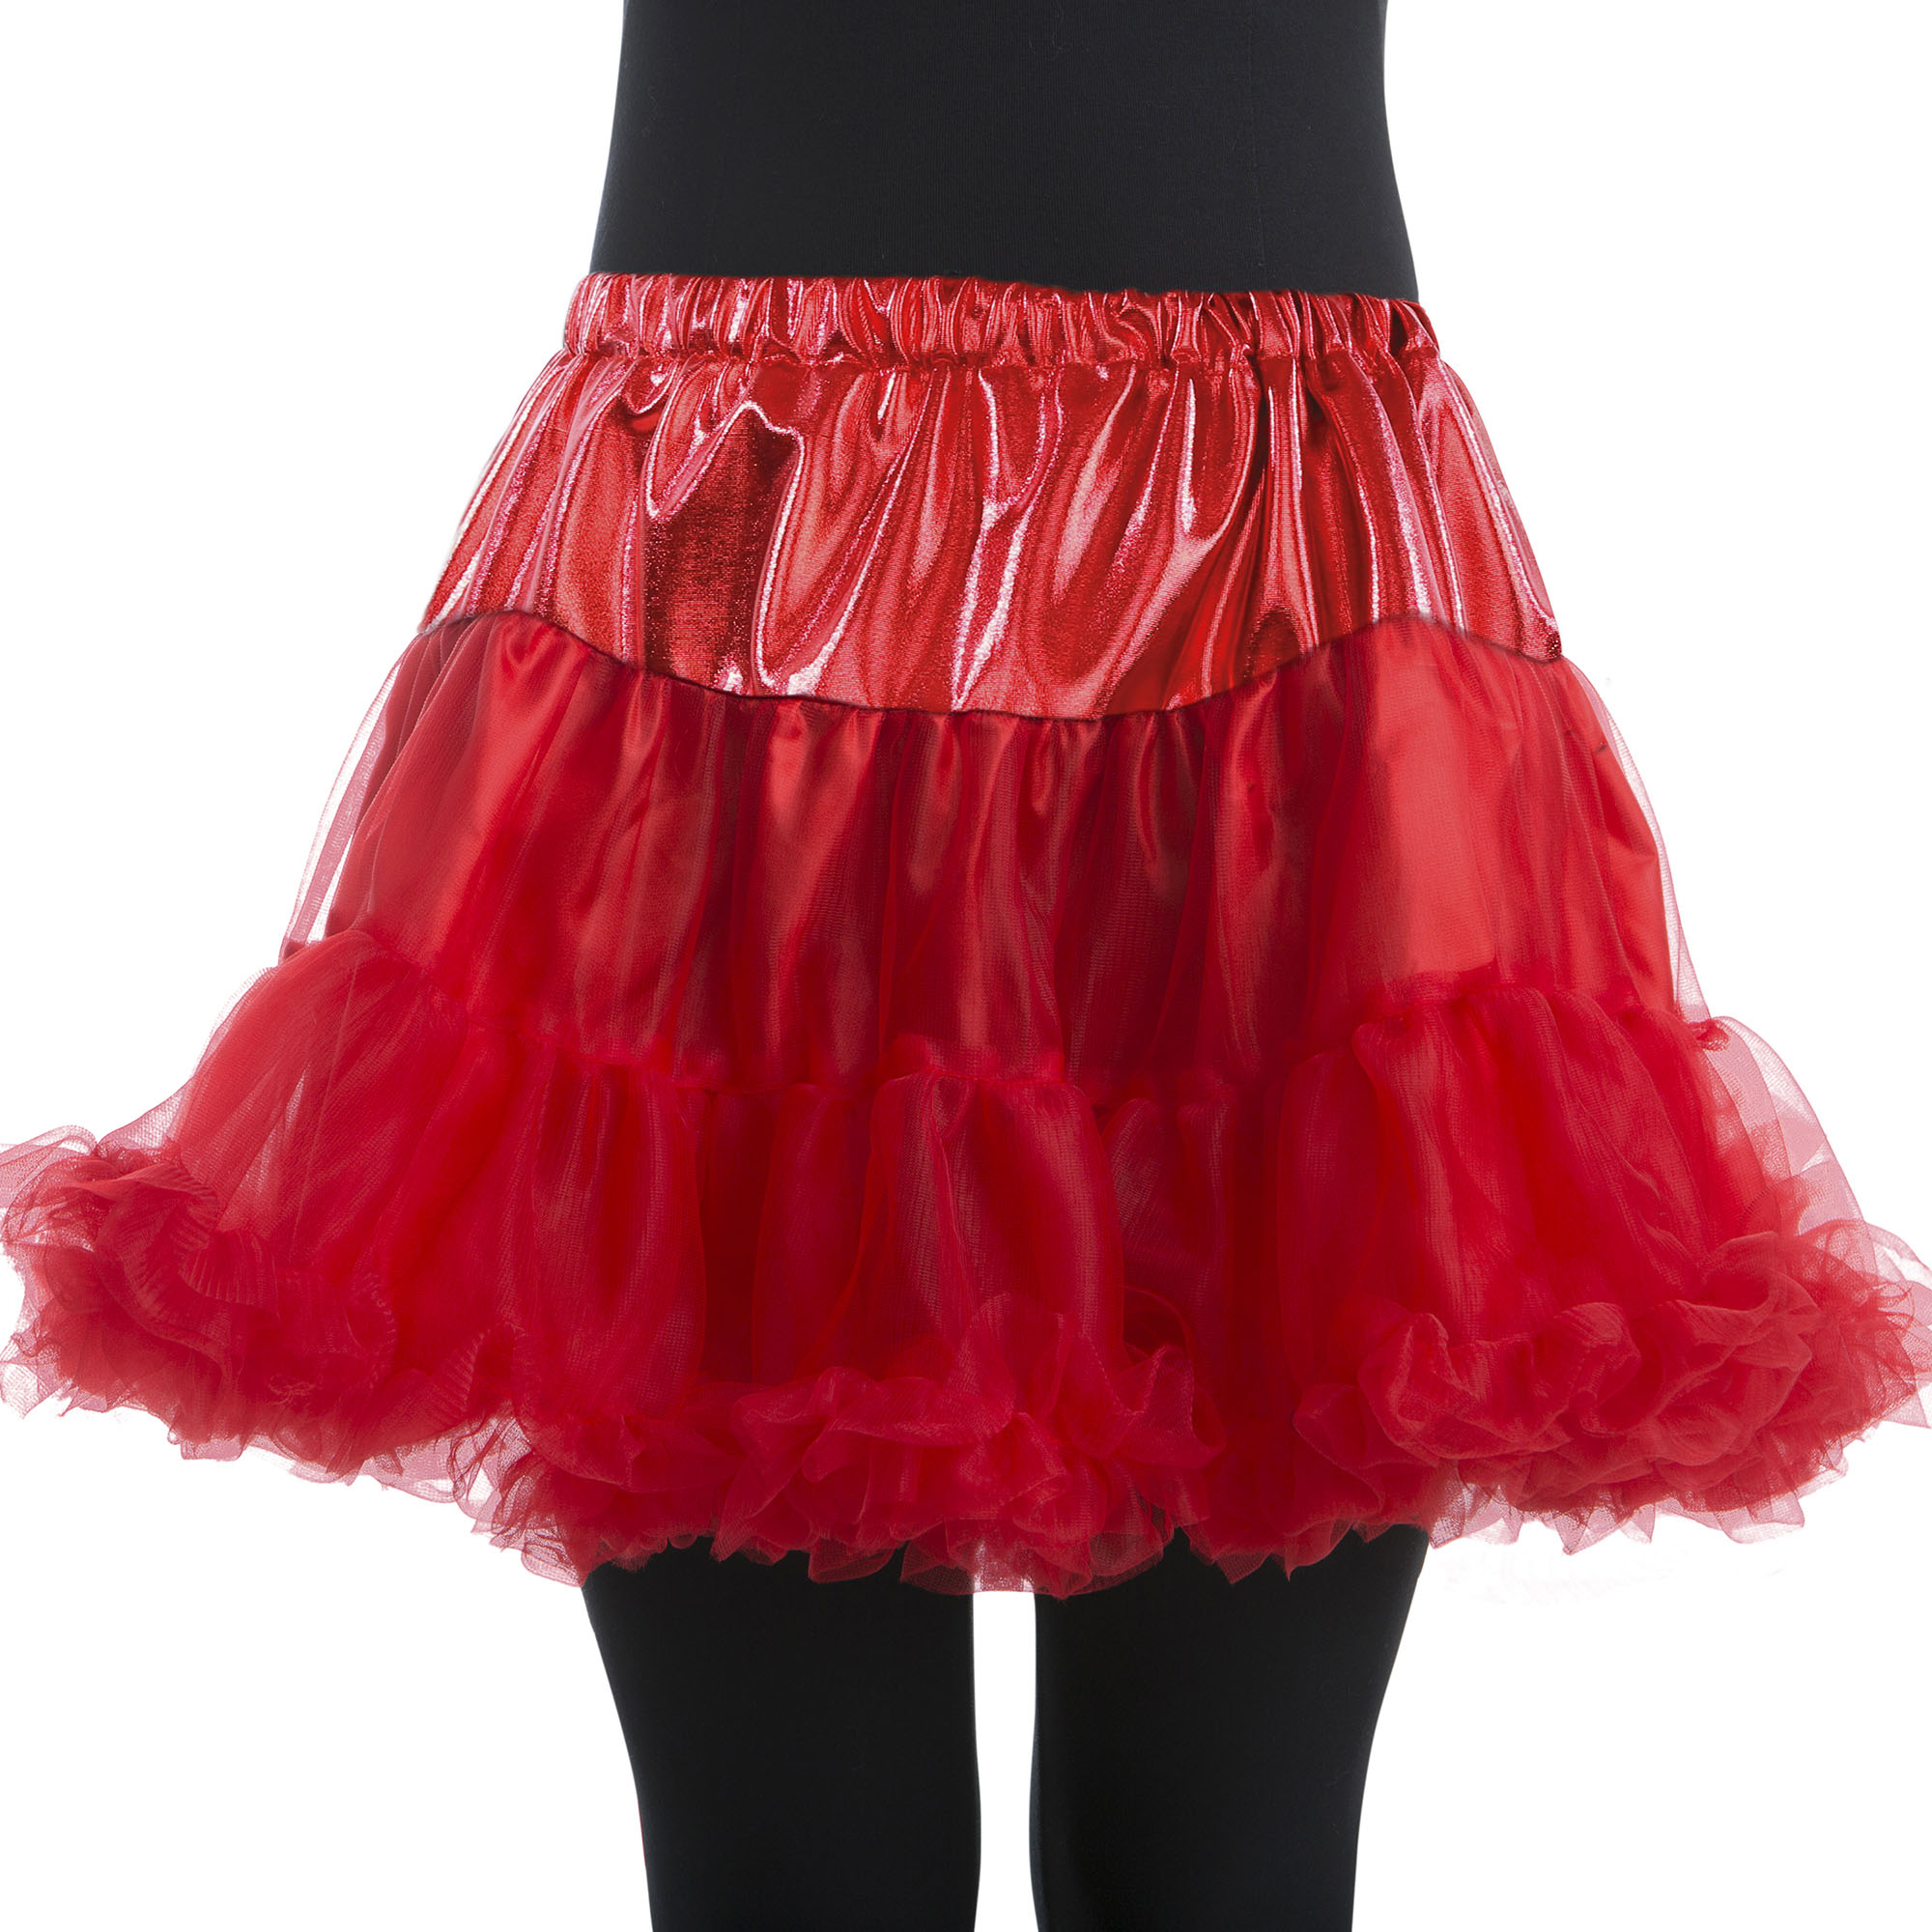 Woman Red Petticoat Large/Plus Halloween Dress Up / Costume Accessory